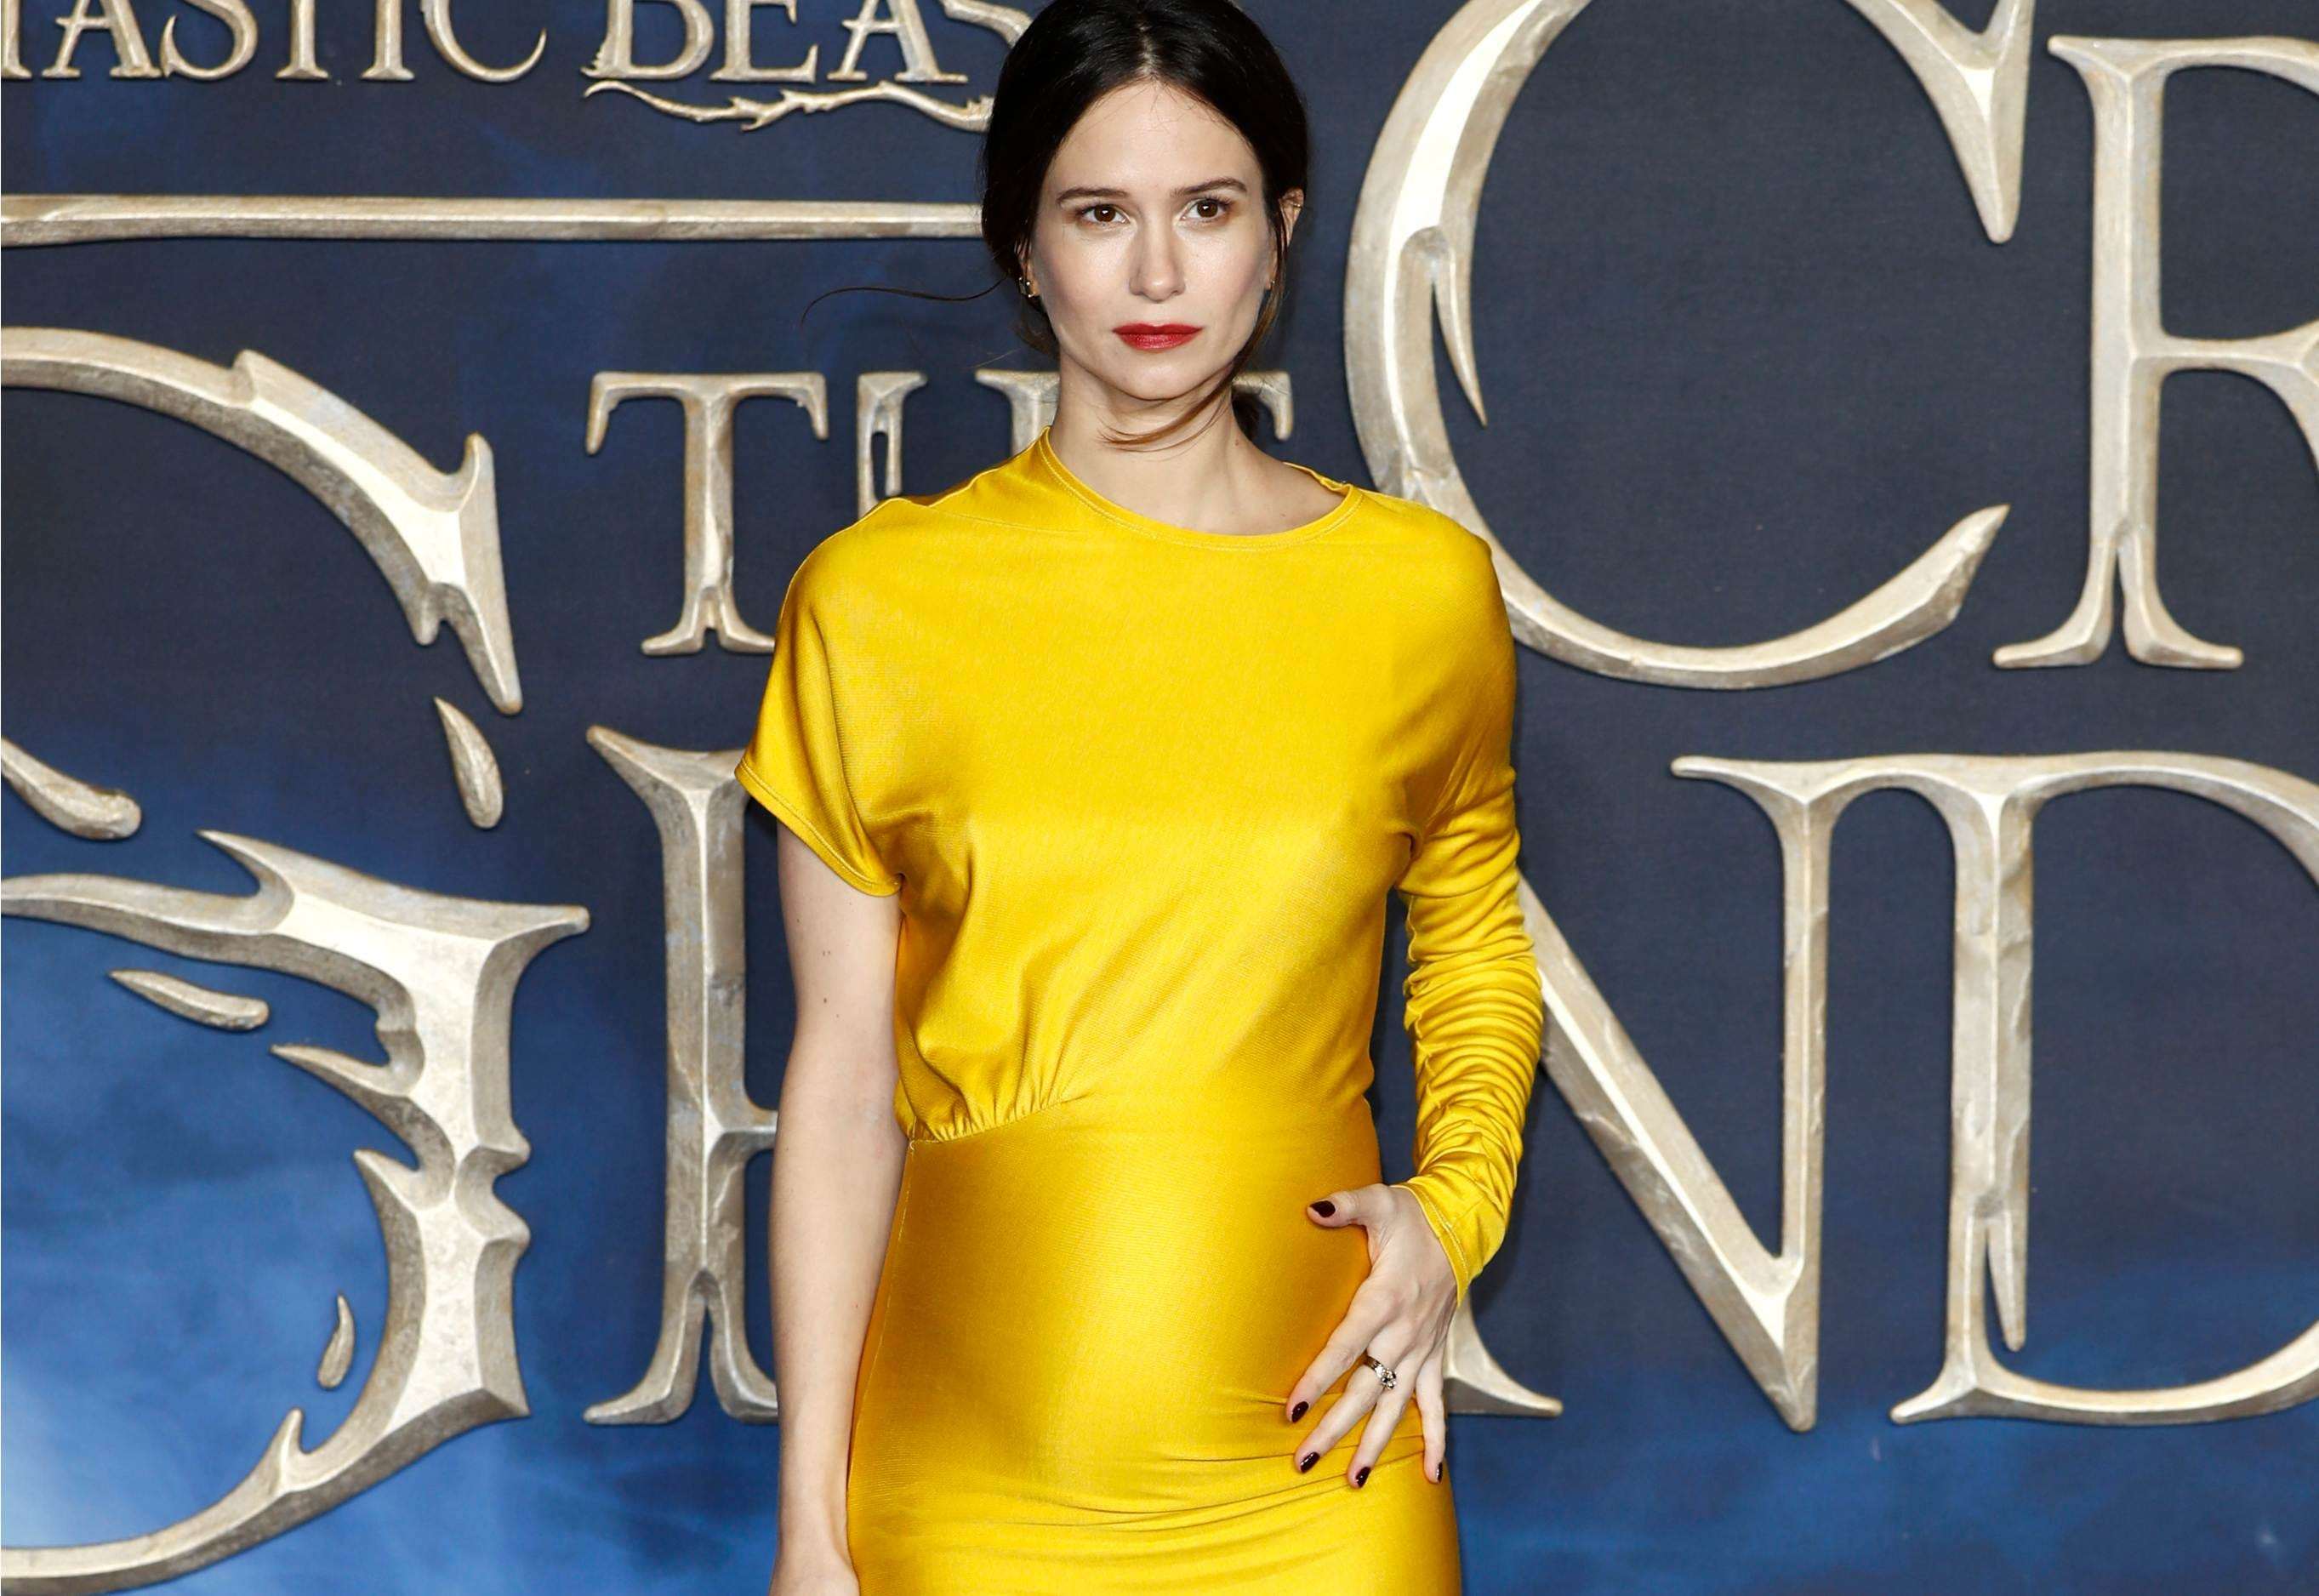 'Fantastic Beasts' star Katherine Waterston is expecting